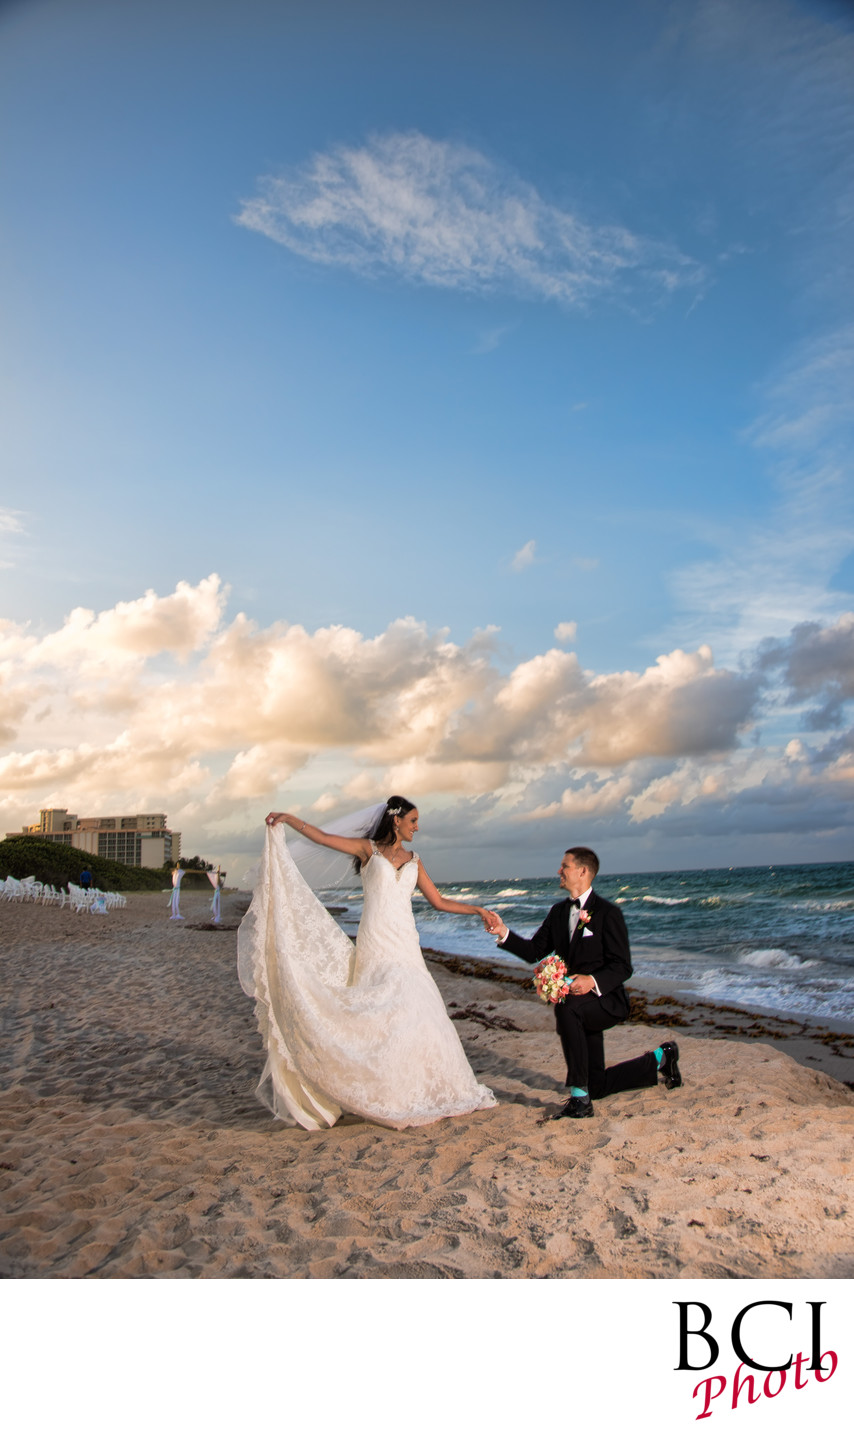 First wedding dance on the beach portrait